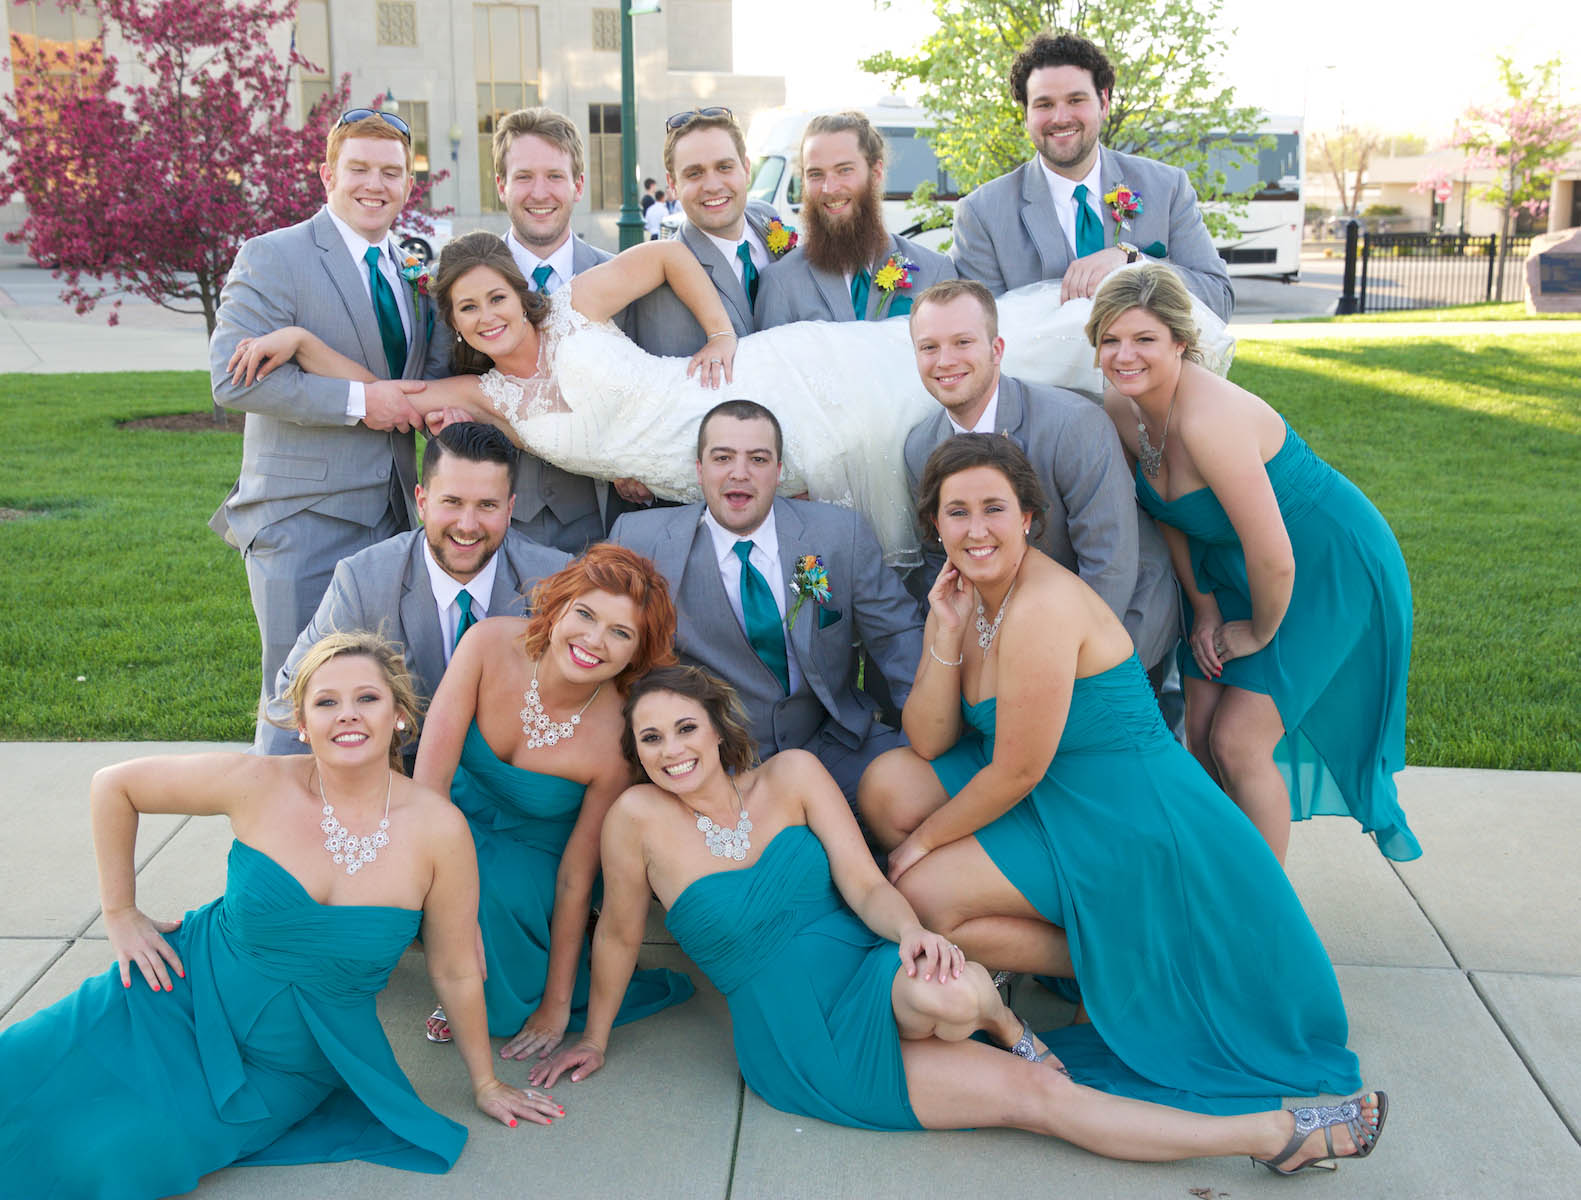 The wedding party tries a pose, outdoor portaits in downtown Jacksonville. Wedding pictures by Tiffany & Steve of Warmowski Photography.